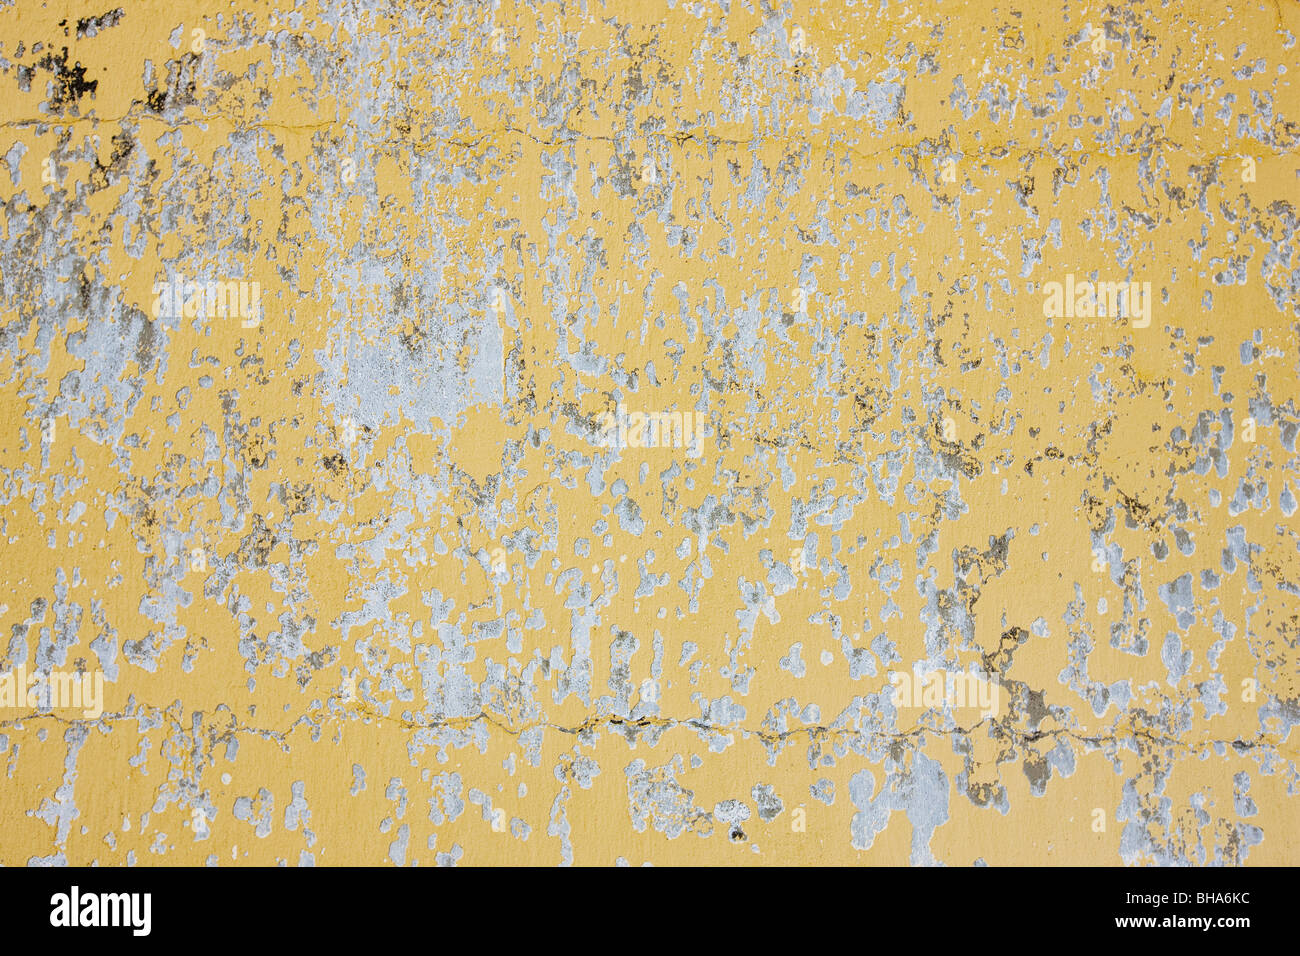 Old and weathered wall background - Stock Image